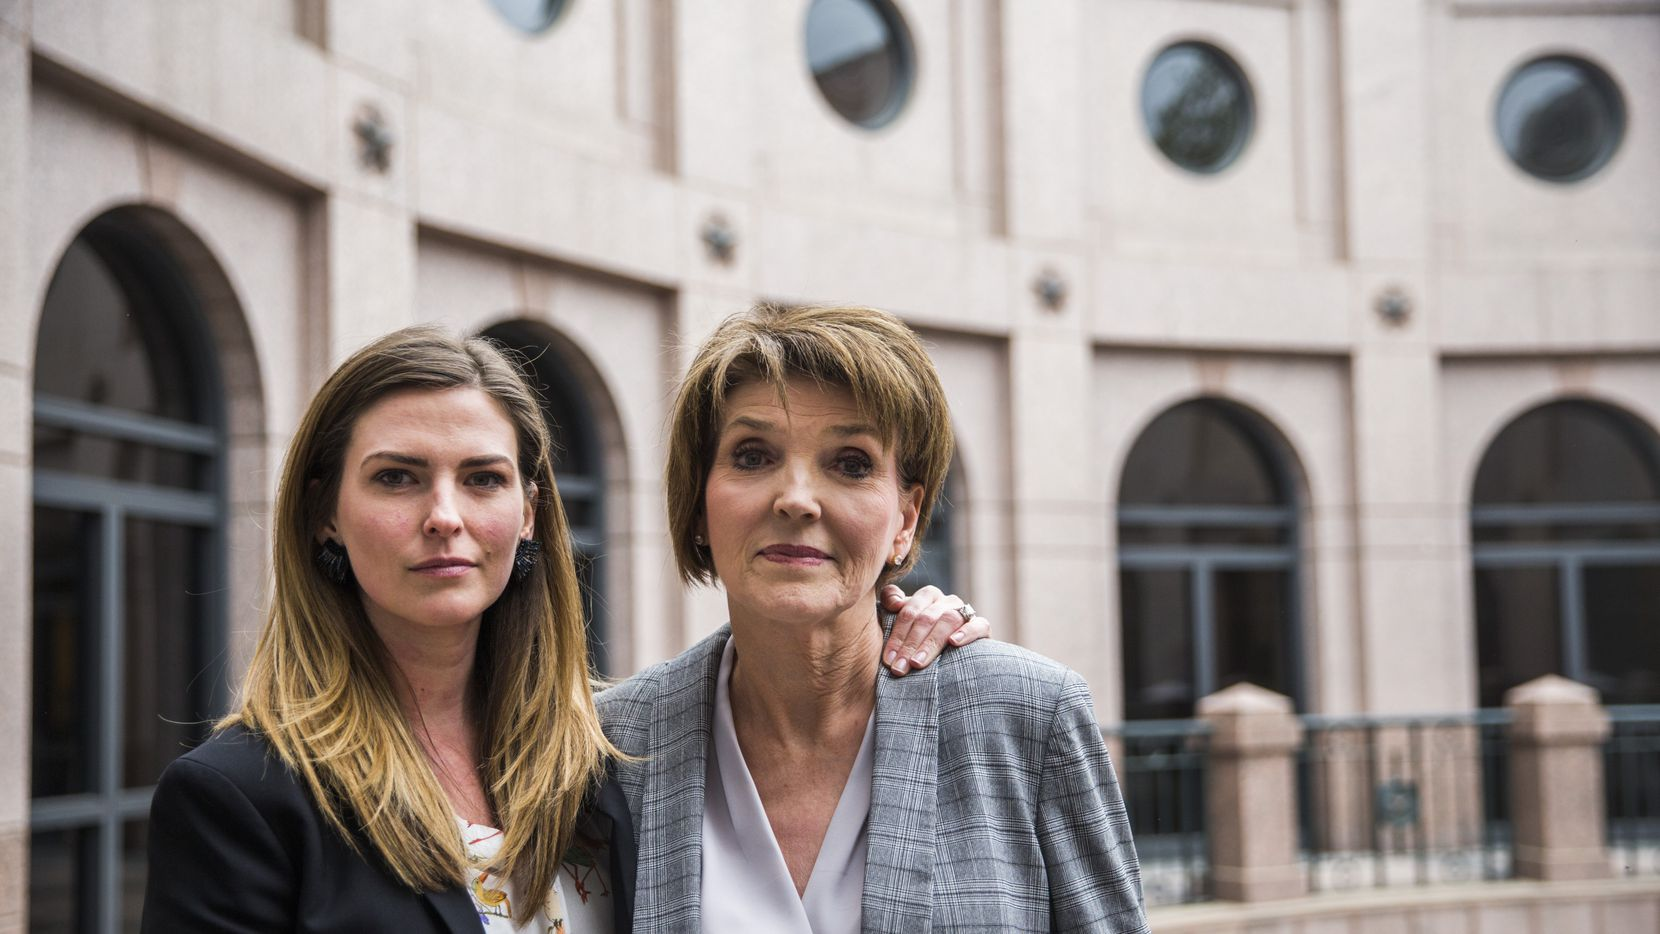 Eve Wiley (left) and her mother, Margo Williams, poses for a portrait after testifying before the Senate Criminal Justice Committee on Wednesday, April 3, 2019 at the Texas state capitol extension in Austin. Wiley was conceived through artificial insemination. Through genetic testing in 2018, she discovered that the sperm donor her mother chose was not her father. Rather, she says the doctor who performed the artificial insemination procedure is her father. They, with Texas Senator Joan Huffman, are trying to pass SB 1259, which would make it a state jail felony for a health care provider to implant human reproductive material from an unauthorized source without consent of the patient.